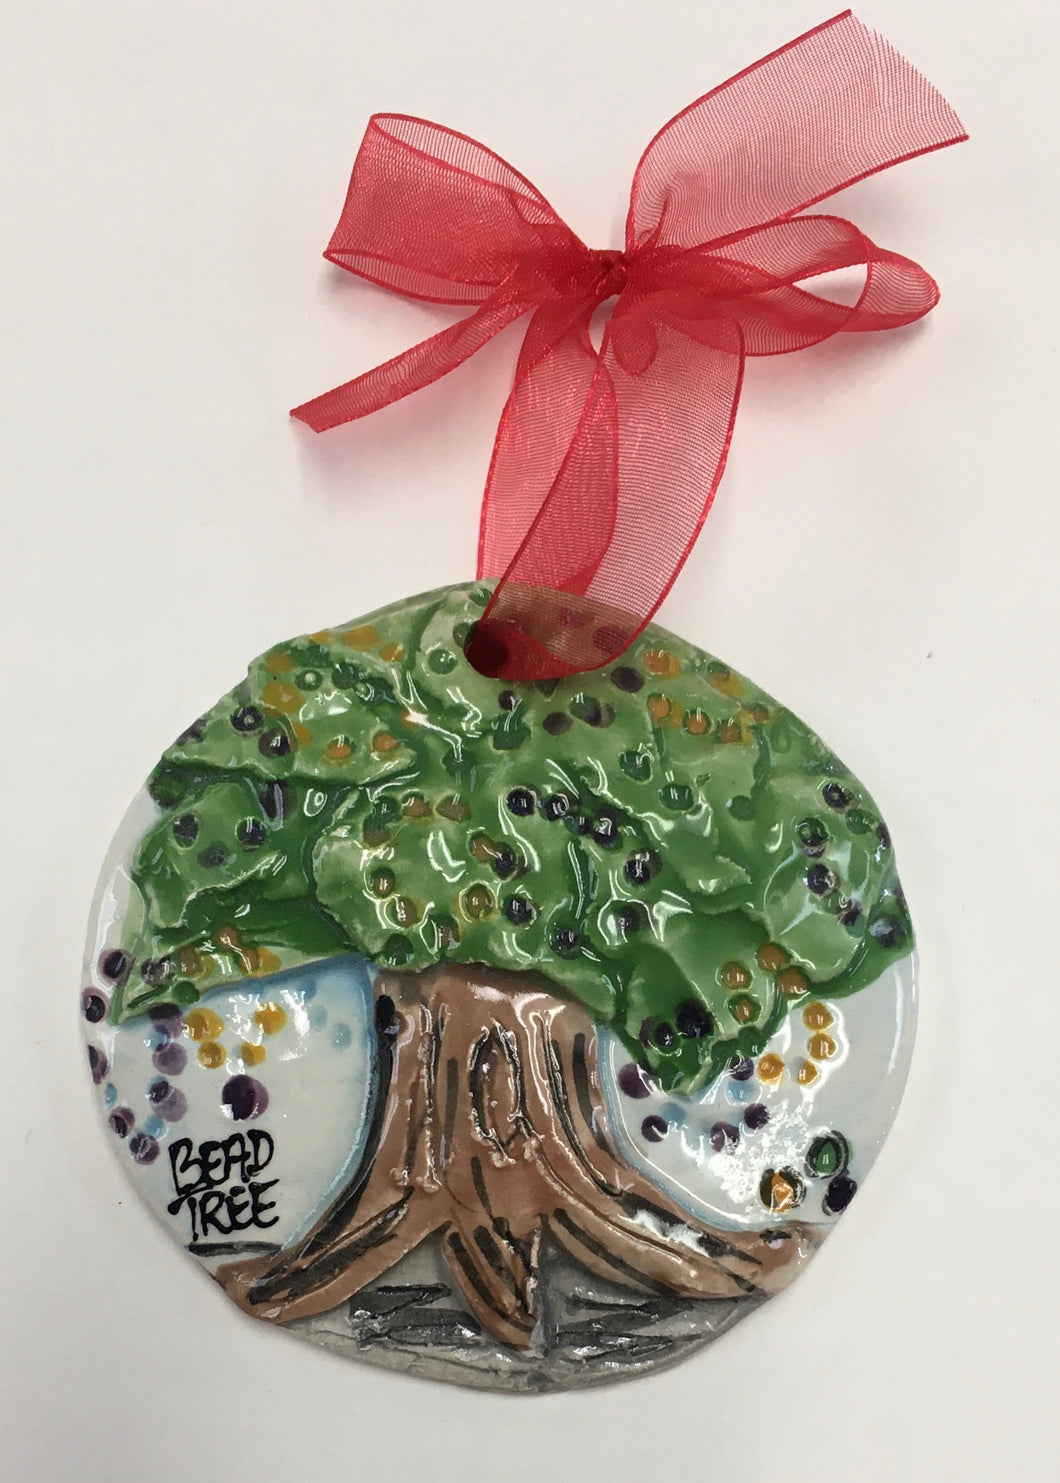 Architectural Memories - Mardi Gras Bead Tree Ornament